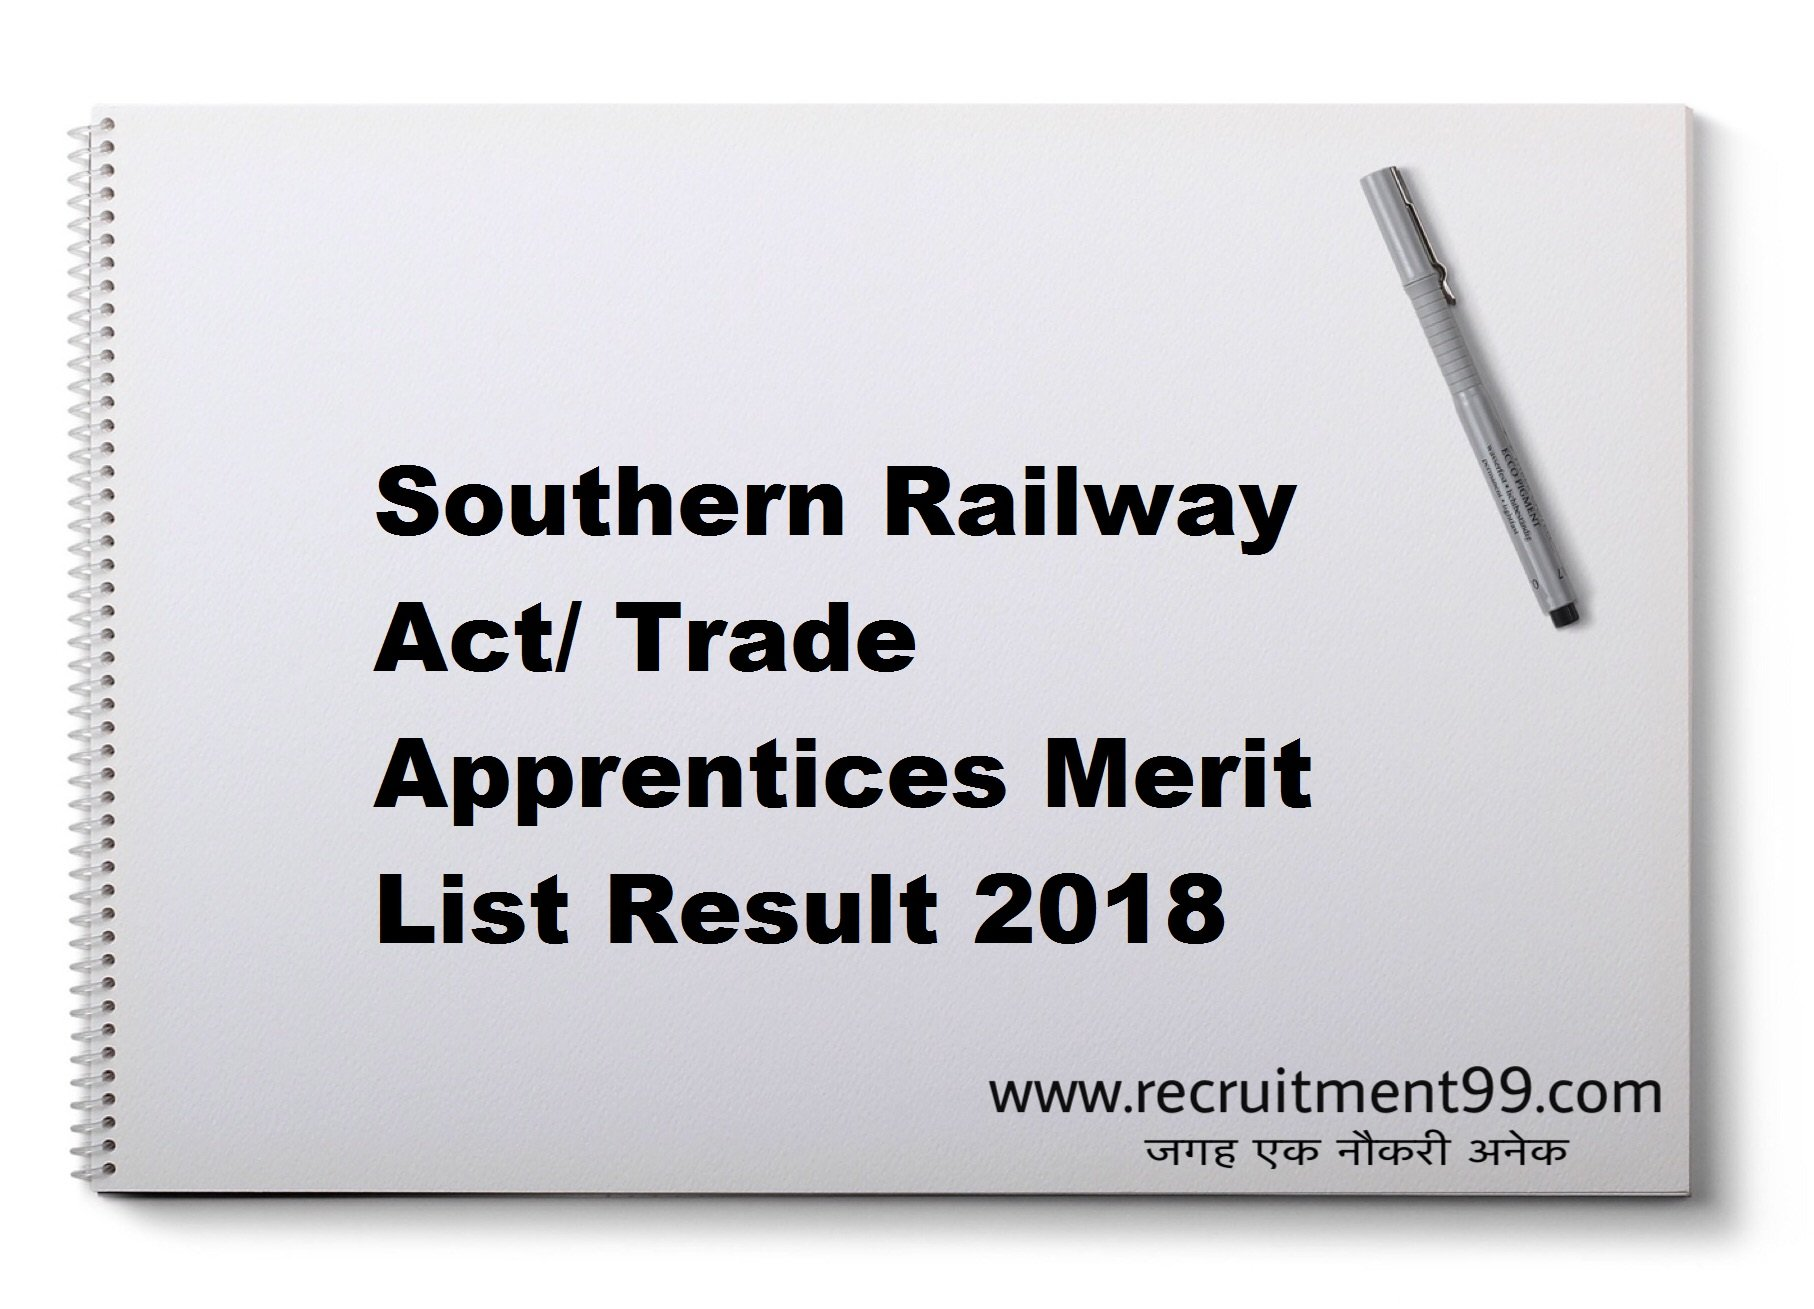 Southern Railway Act/ Trade Apprentices Merit List Result 2018